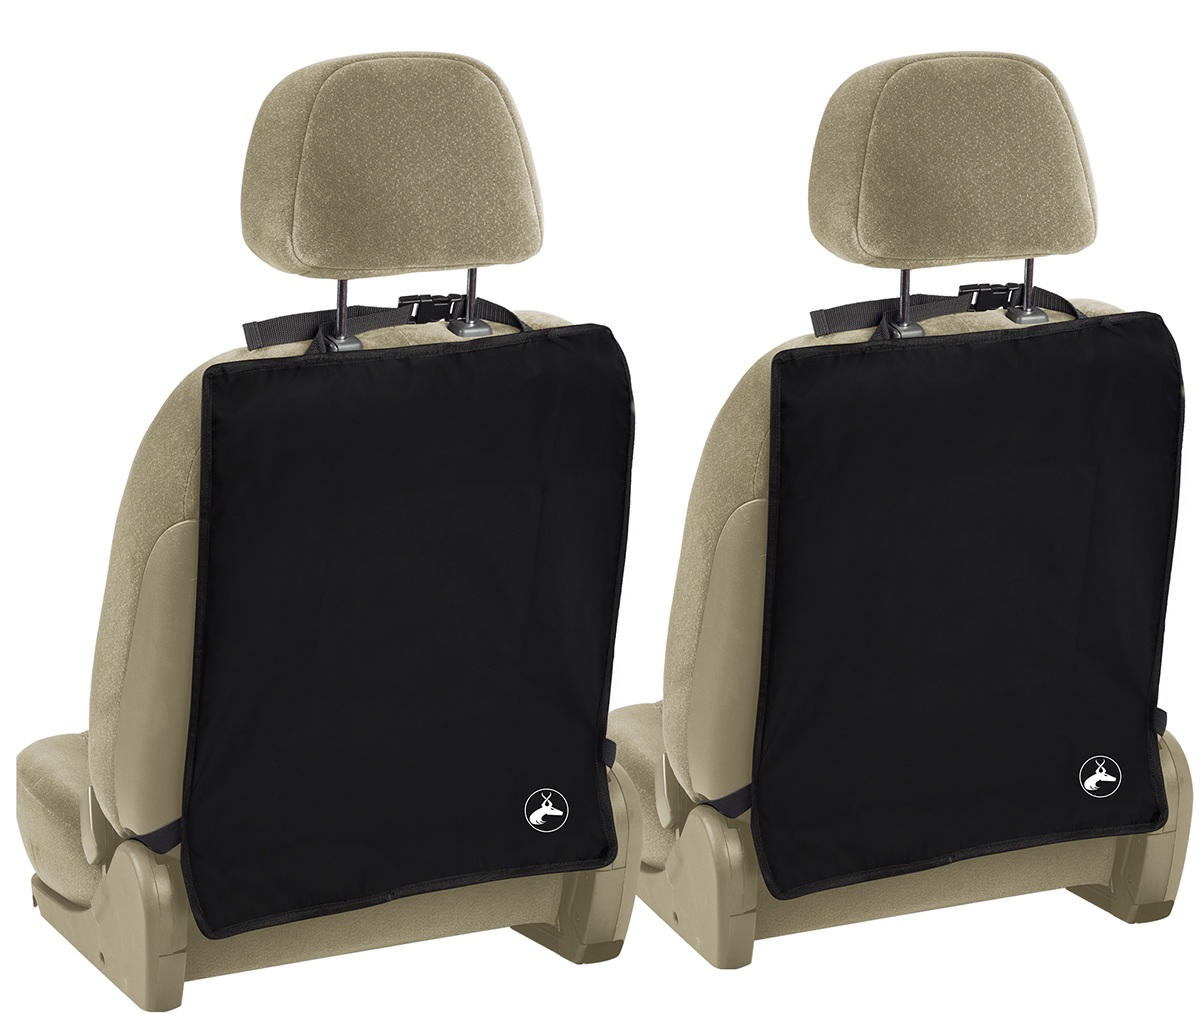 kick mats for auto car back seat cover care kid protector cleaning 2 pack set ebay. Black Bedroom Furniture Sets. Home Design Ideas